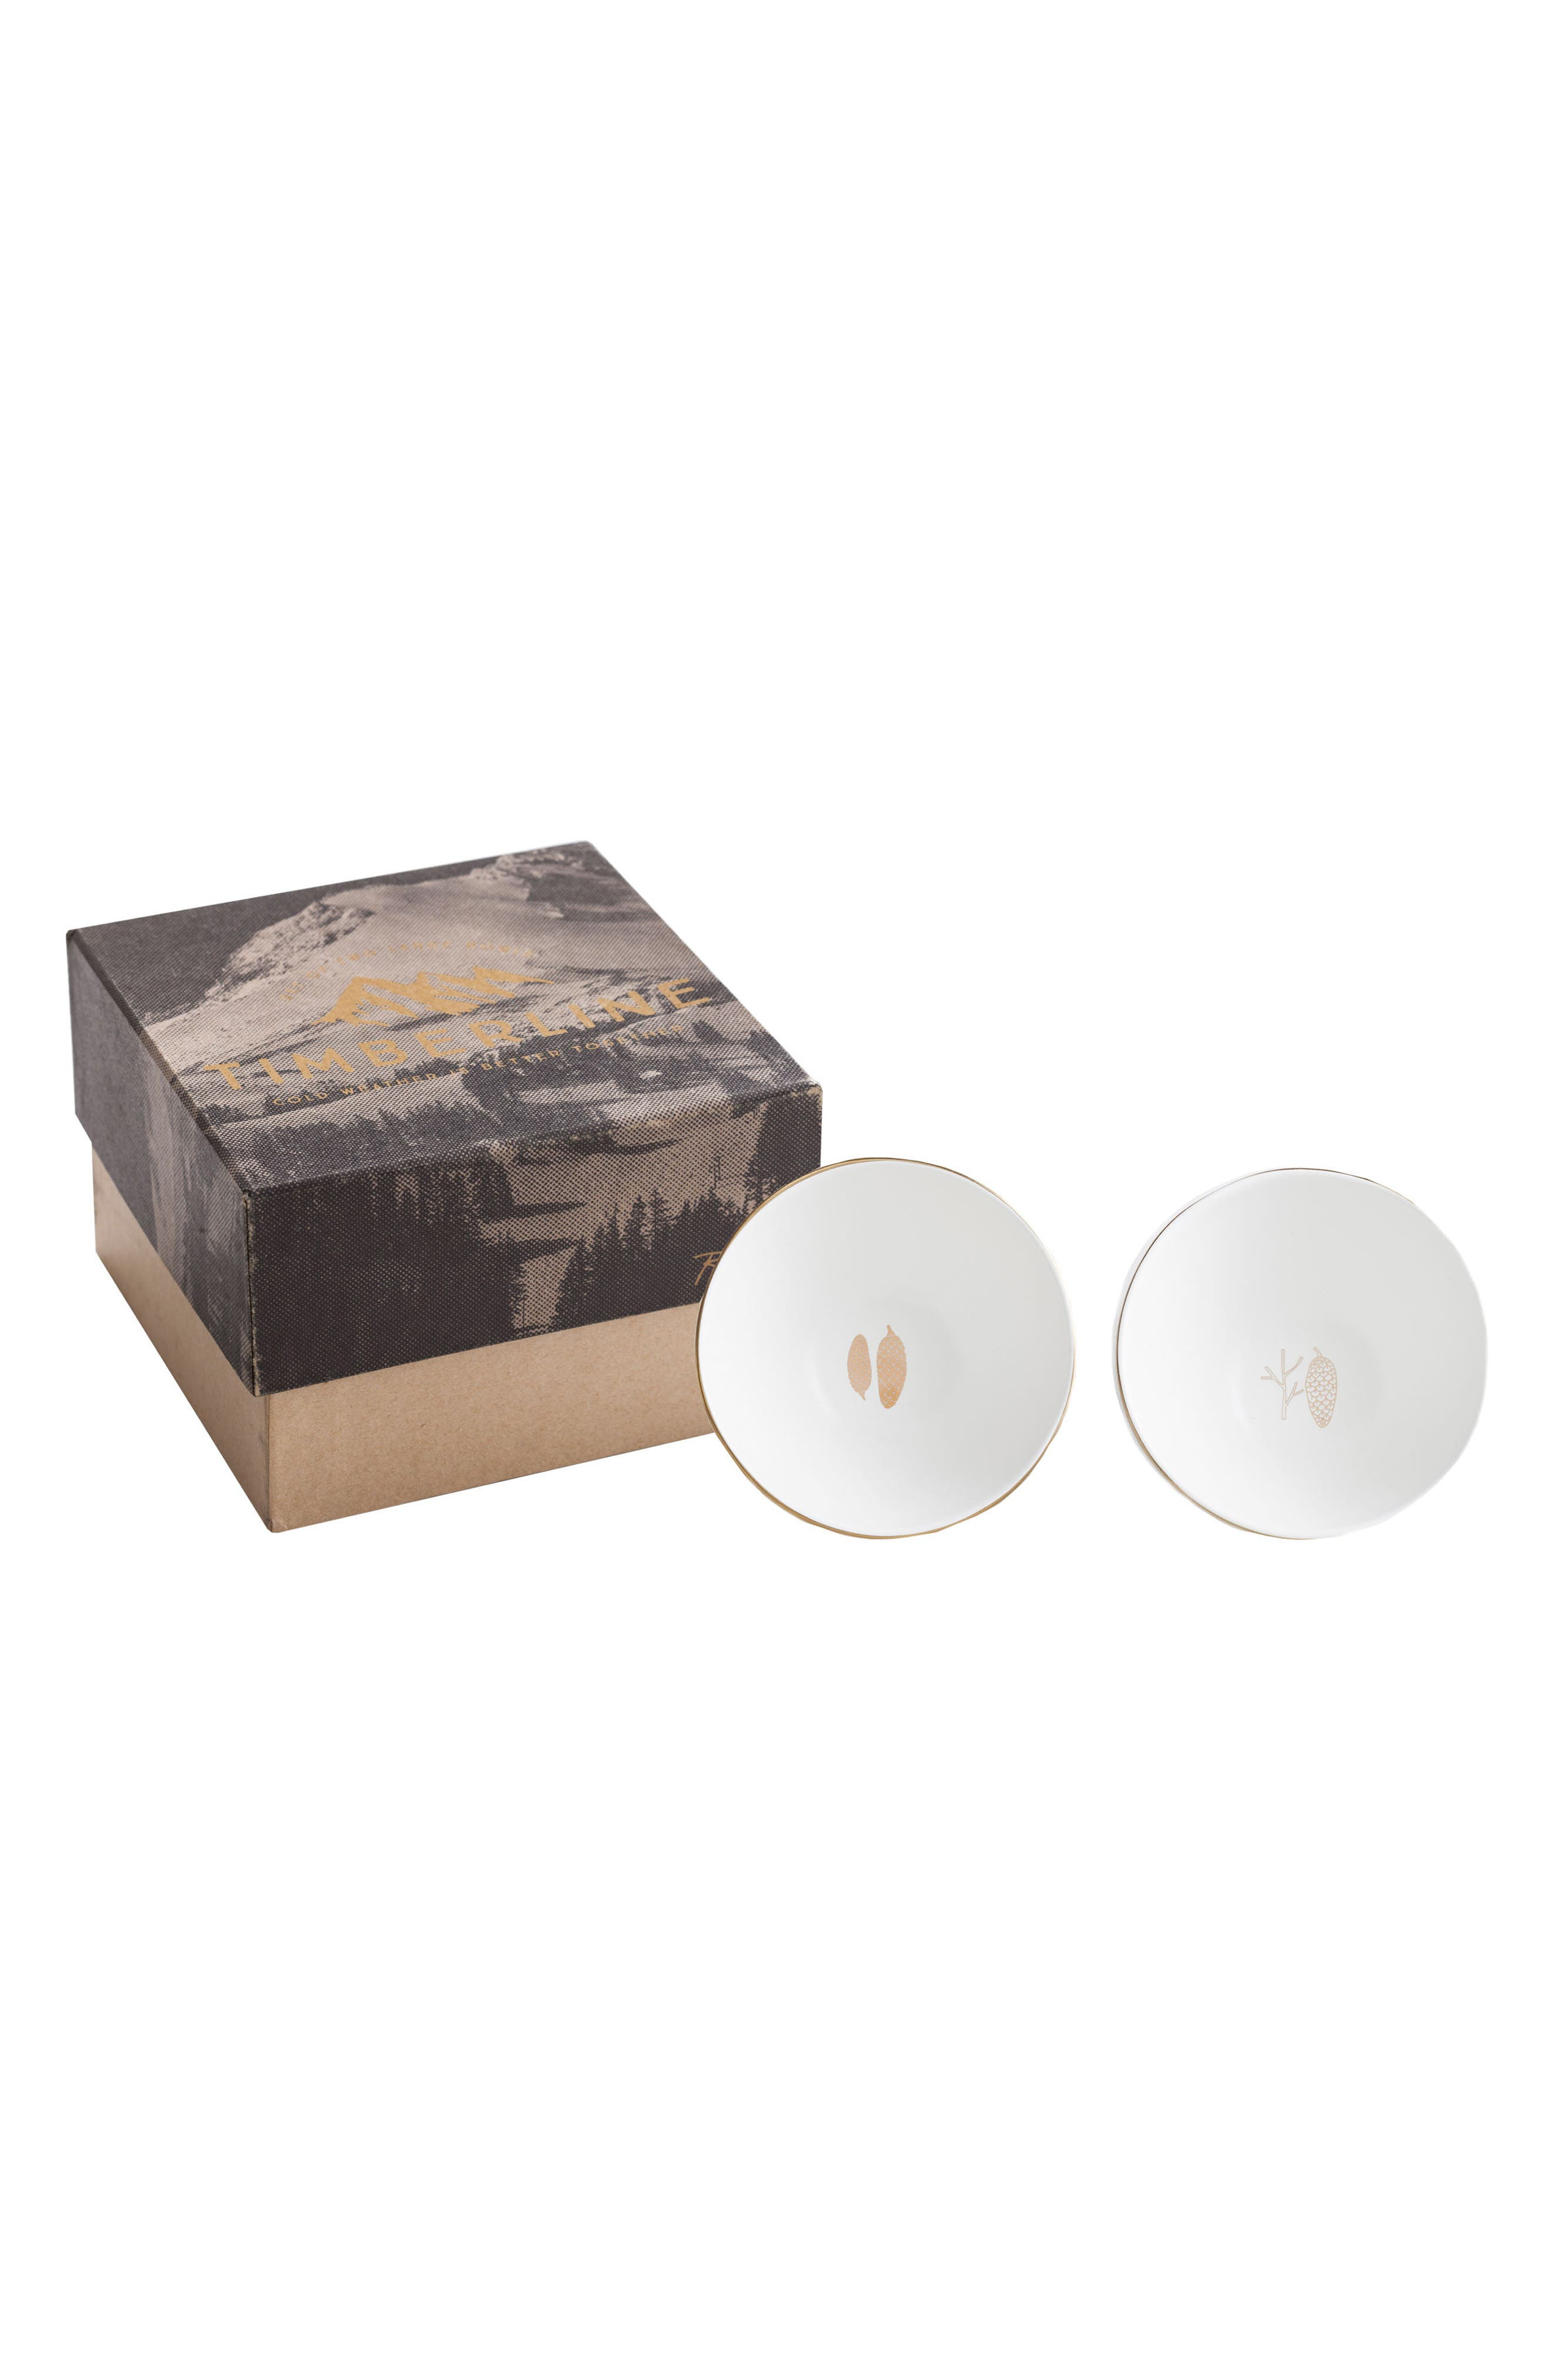 Timberline Set of 2 Porcelain Plates,                         Main,                         color, White/ Gold